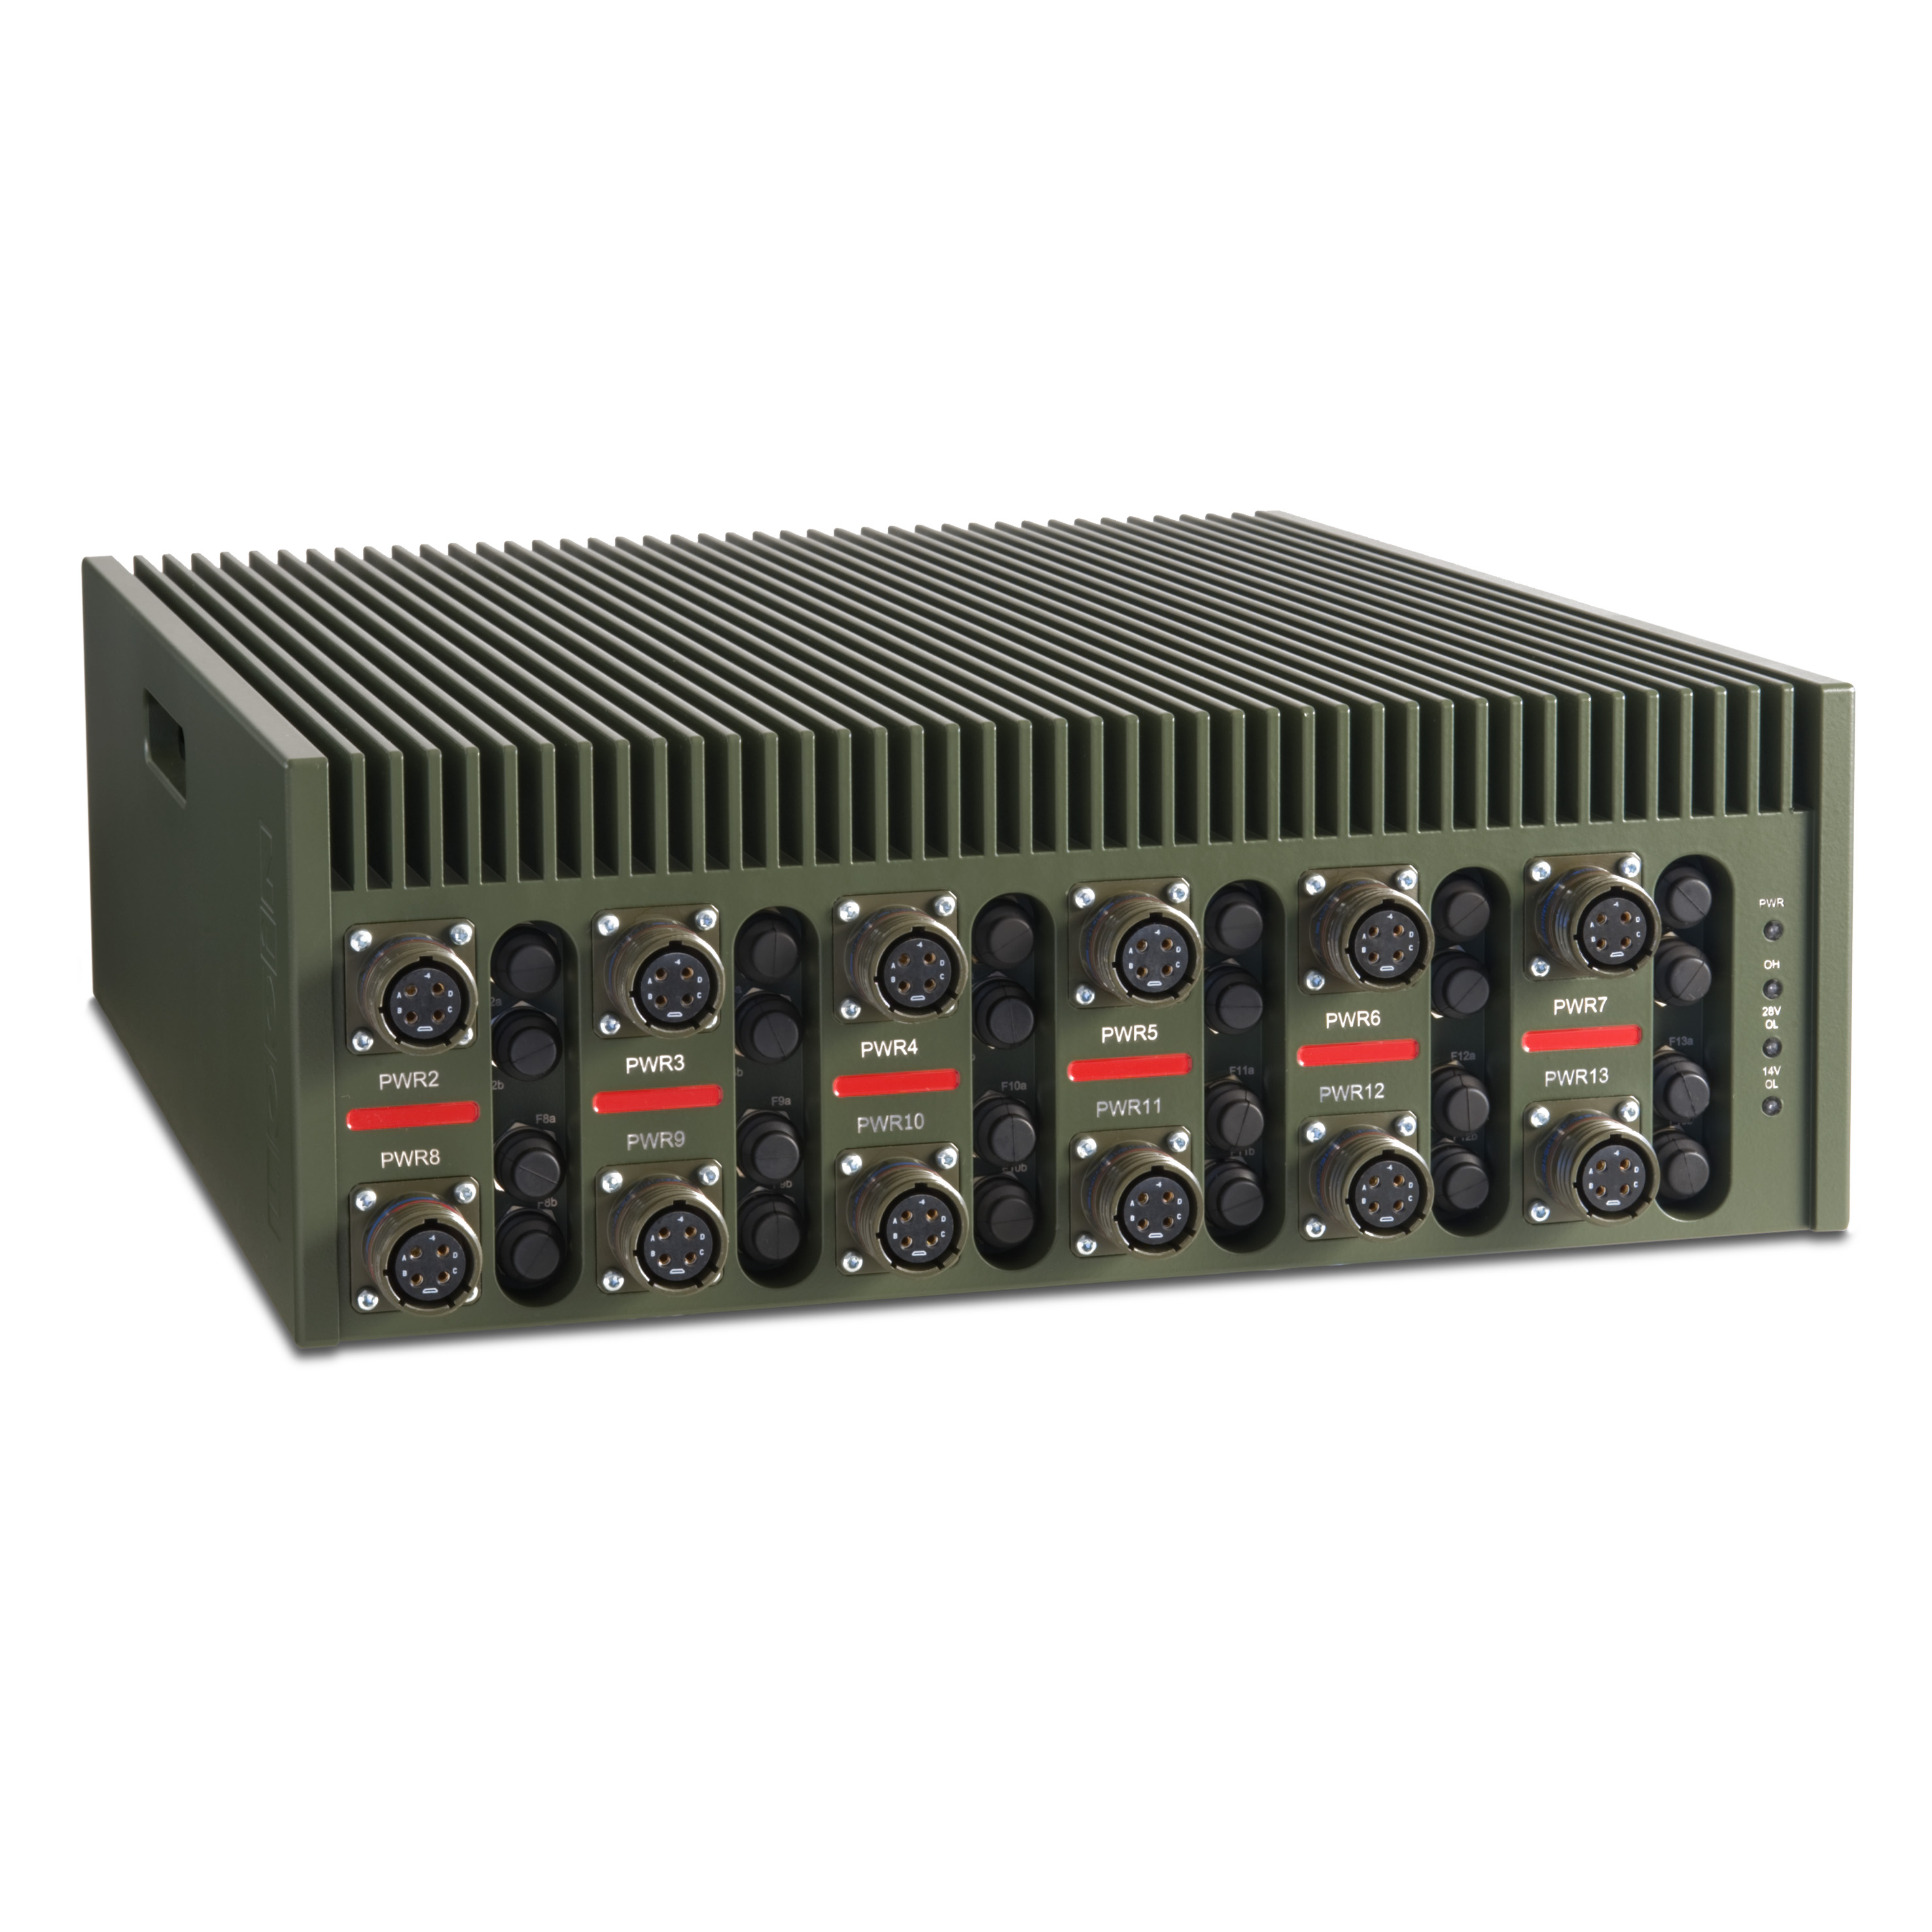 PDU - Power Distribution Unit